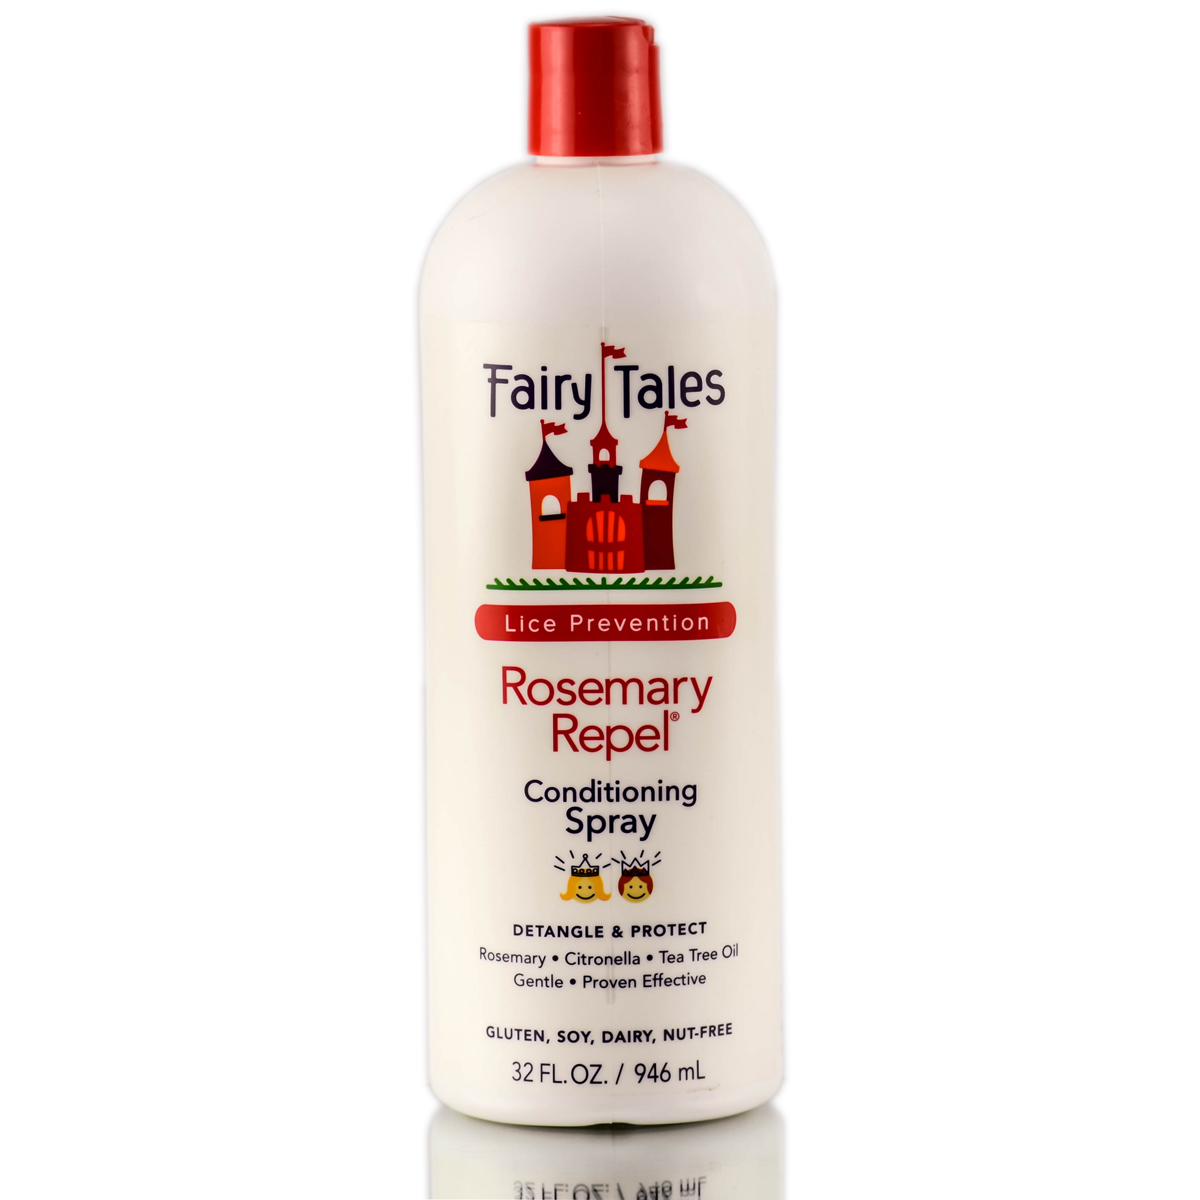 Fairy Tales Rosemary Repel Leave-in Conditioning Spray 812729002513